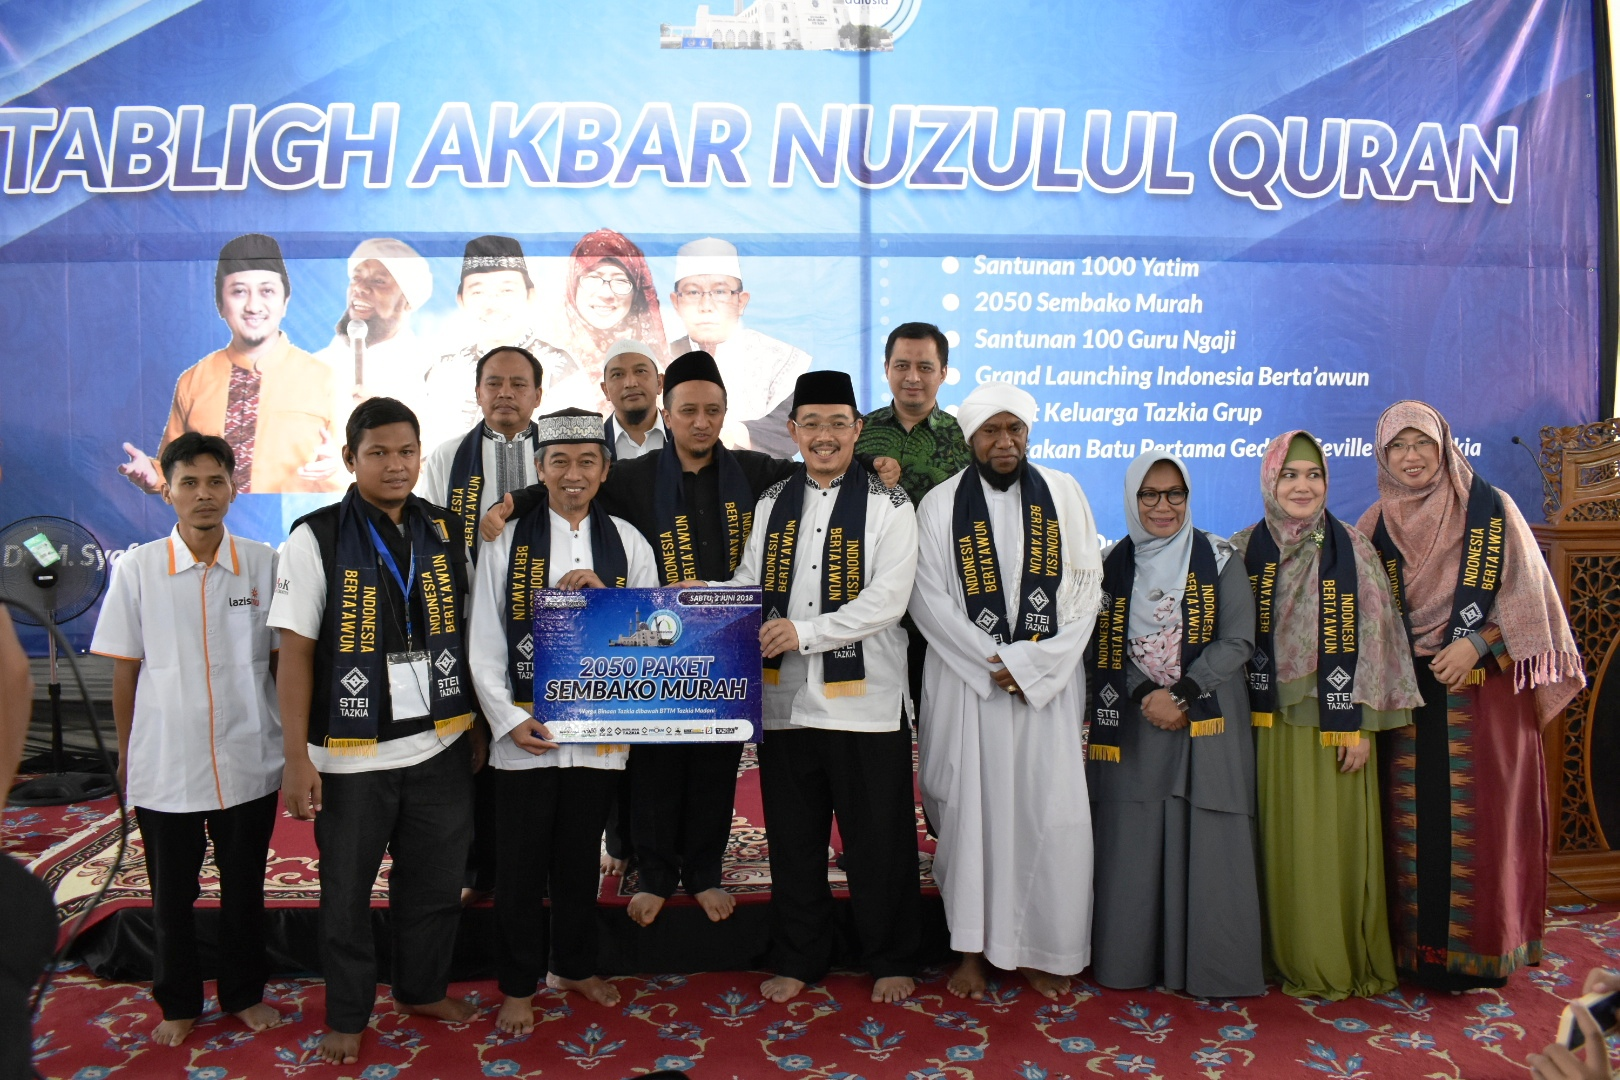 Tabligh Akbar Nuzulul Qur'an Dan Grand Launching Indonesia Berta'awun